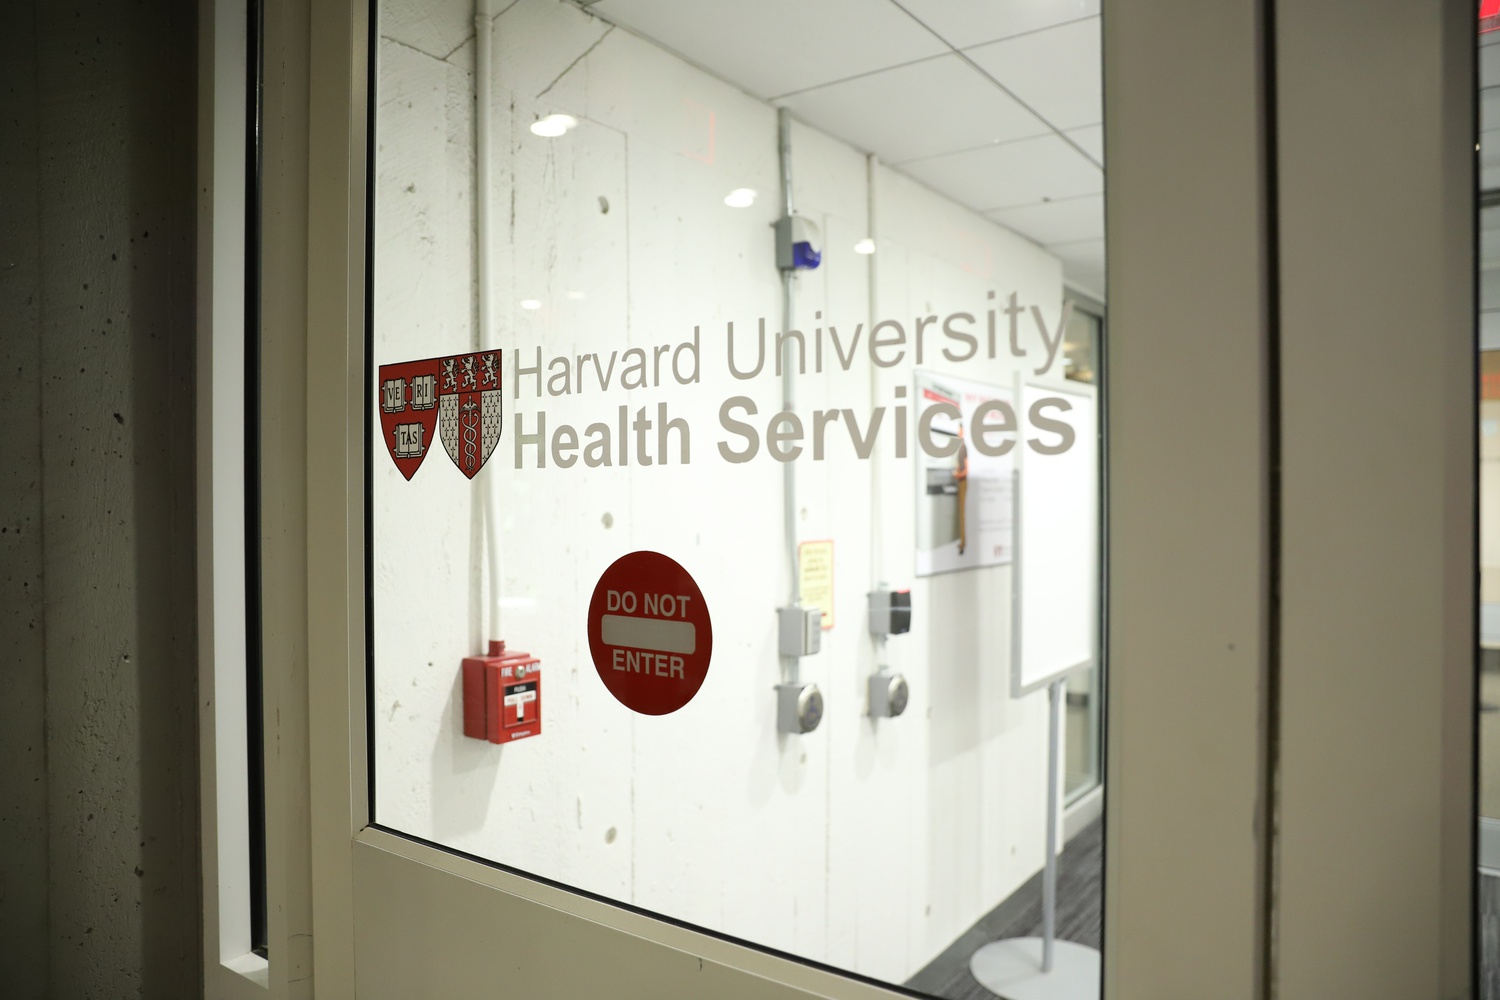 Harvard University Health Services has a location in the Smith Campus Center.